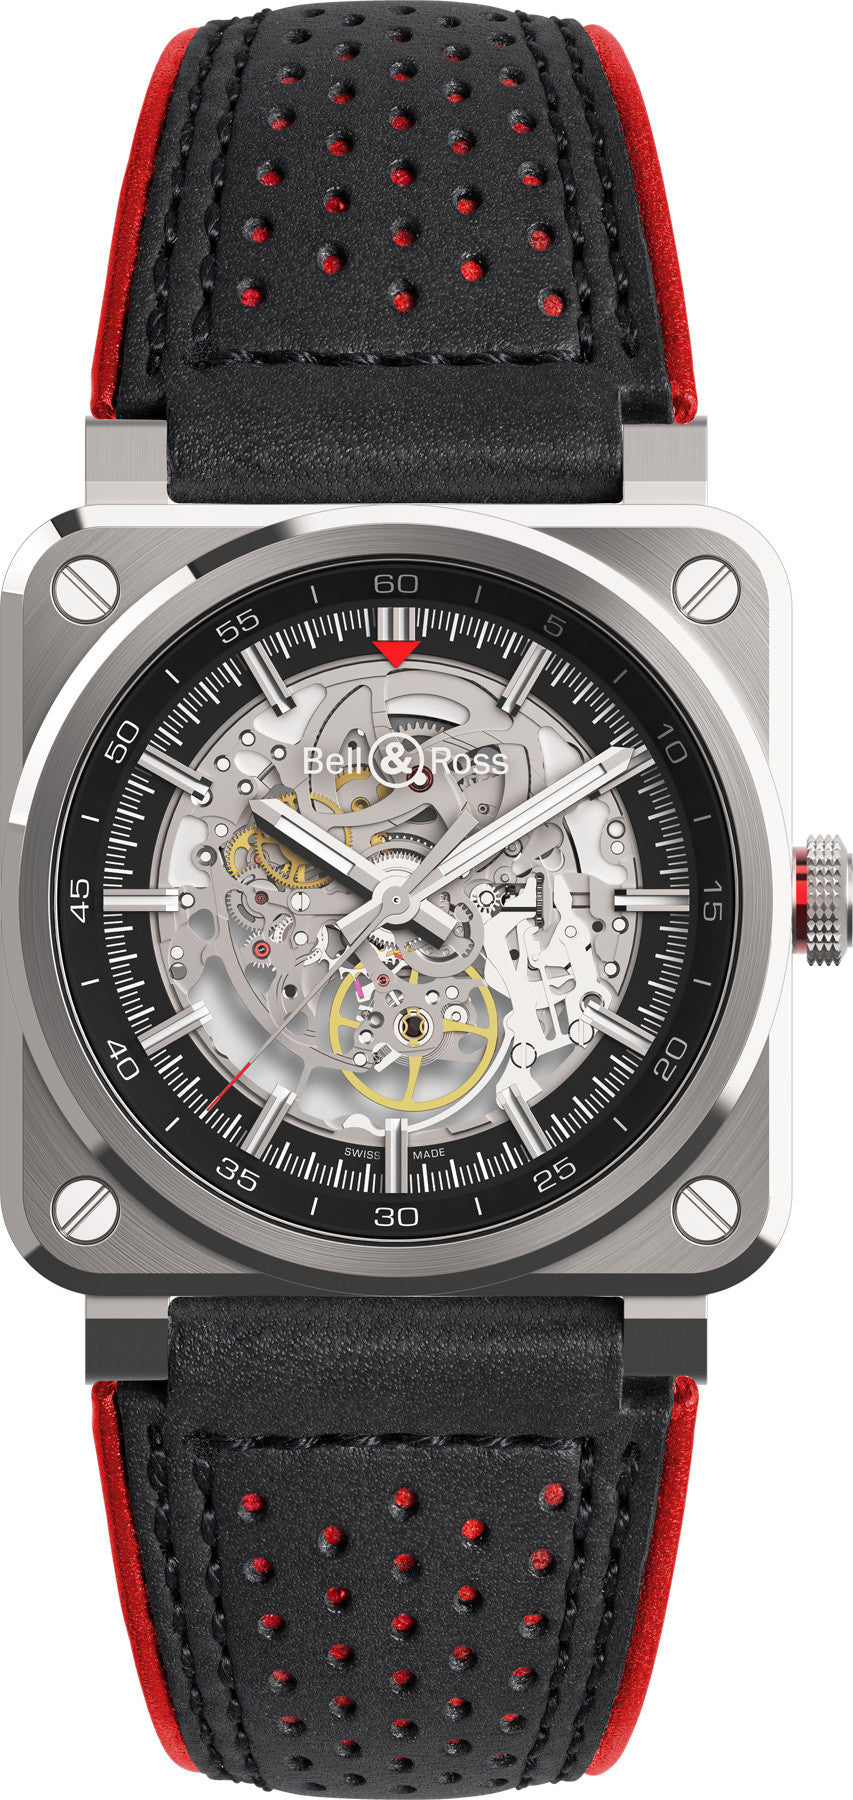 Bell & Ross Watch BR 03 92 AeroGT Limited Edition